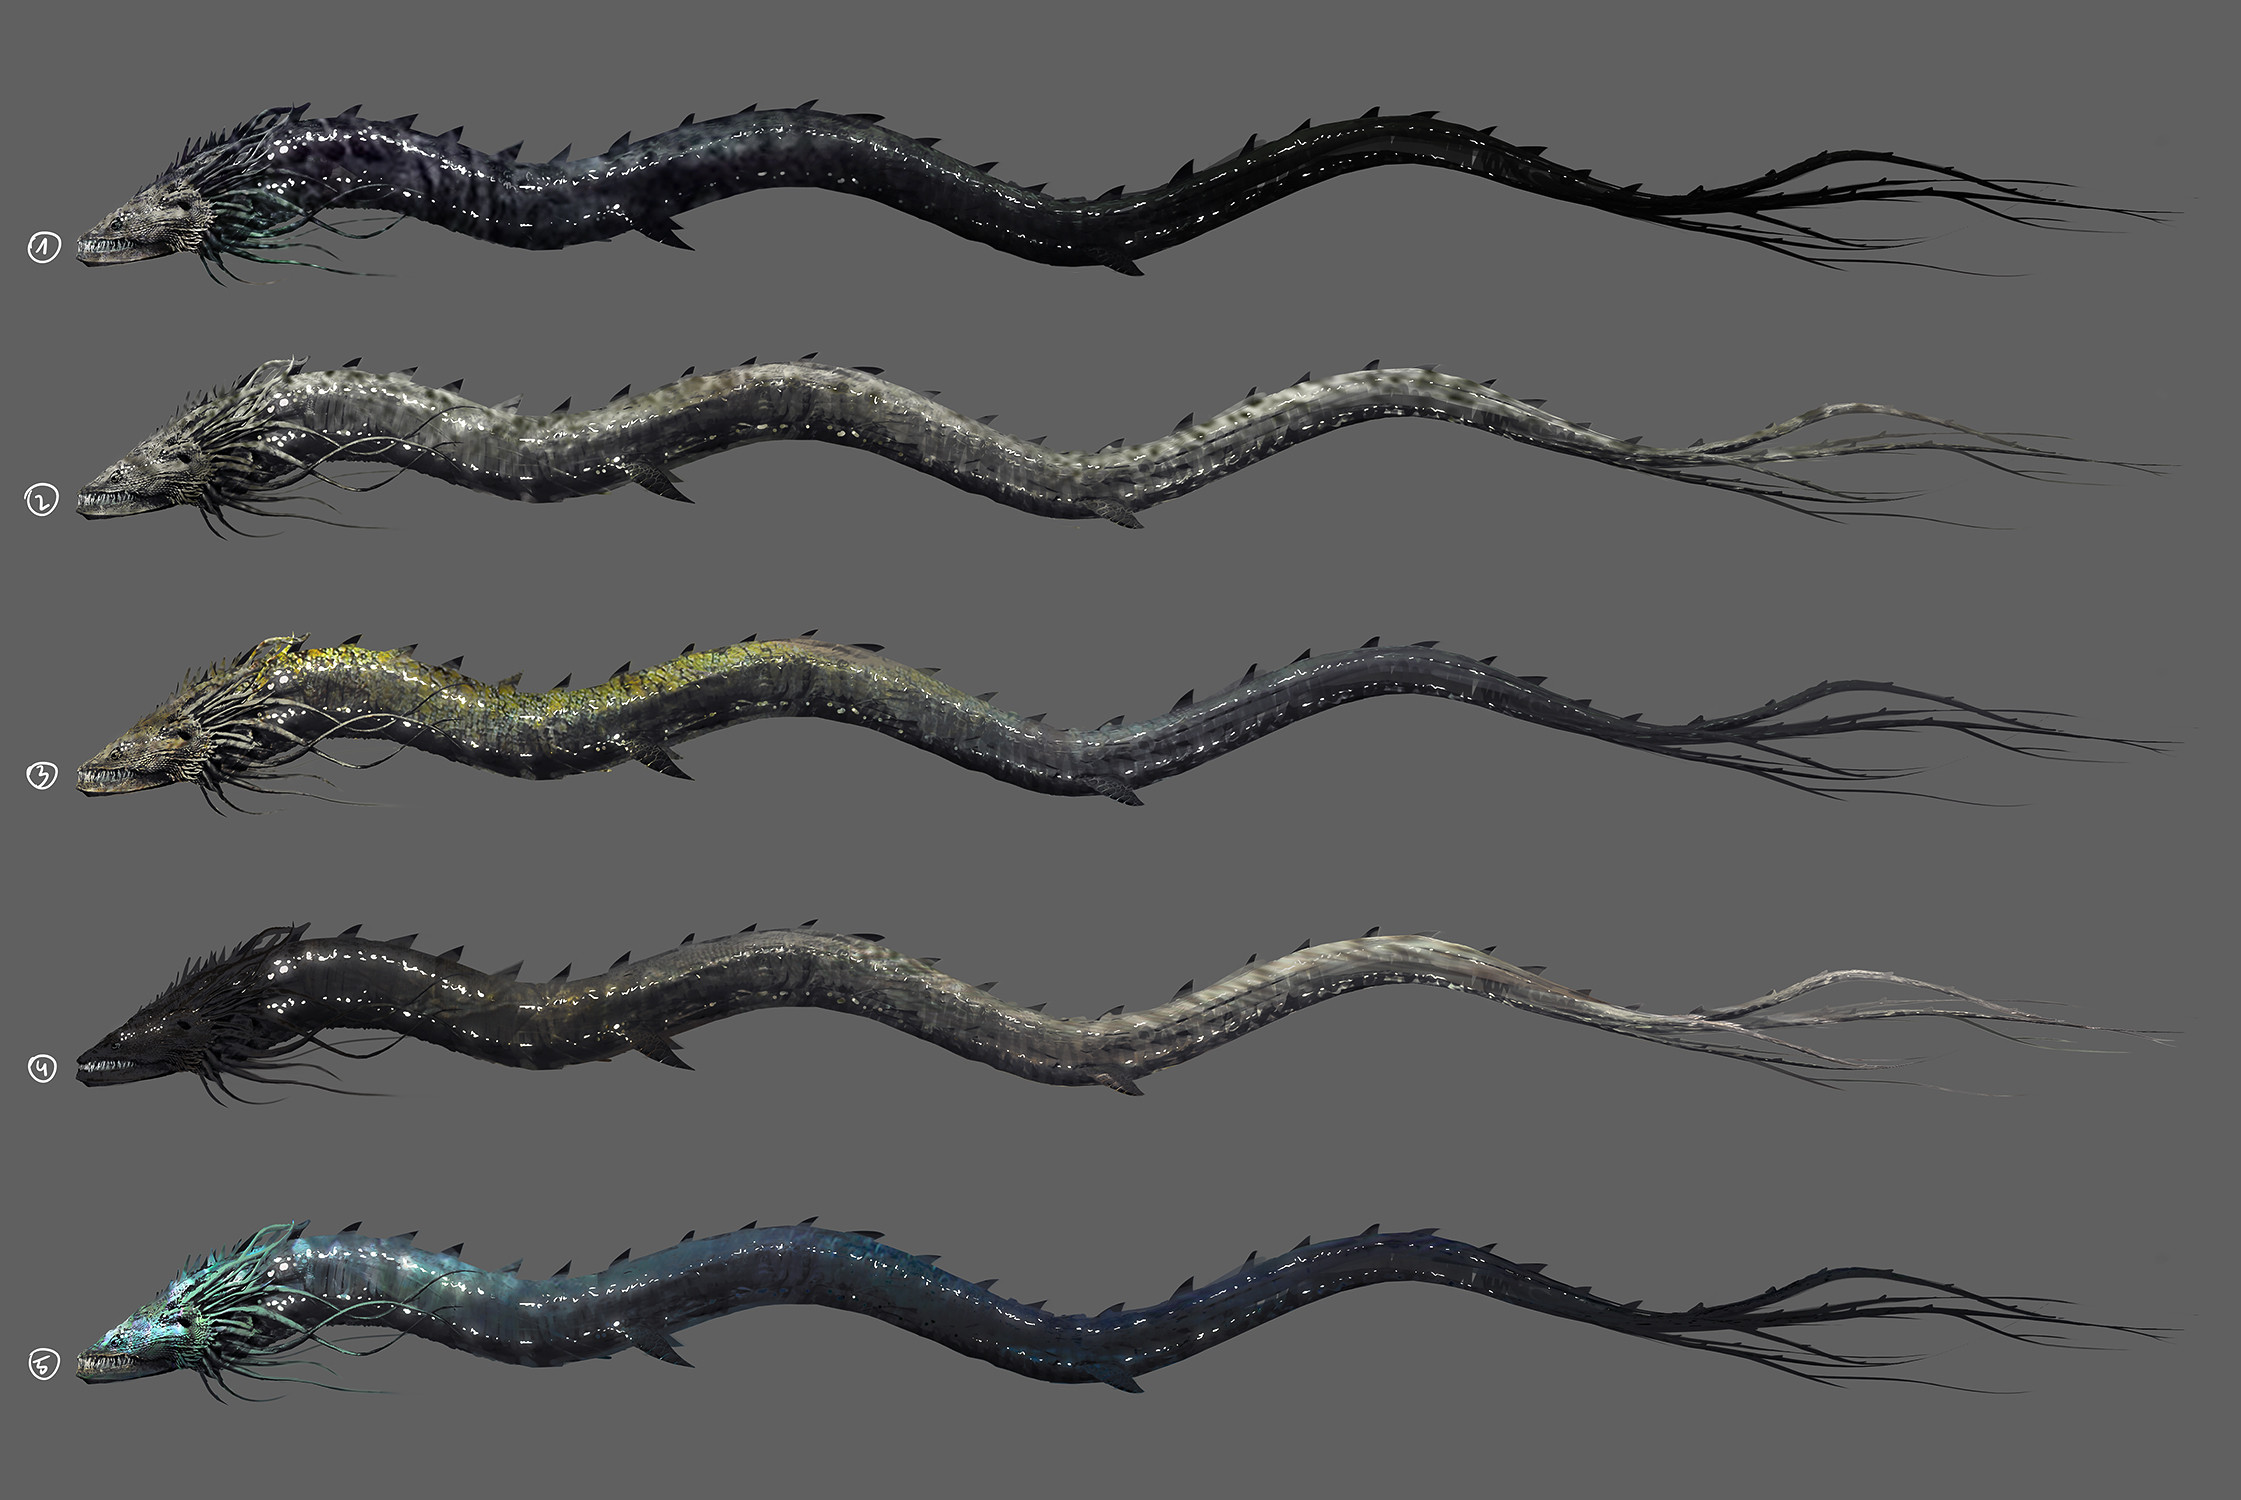 Concept-art ideas and color variations.